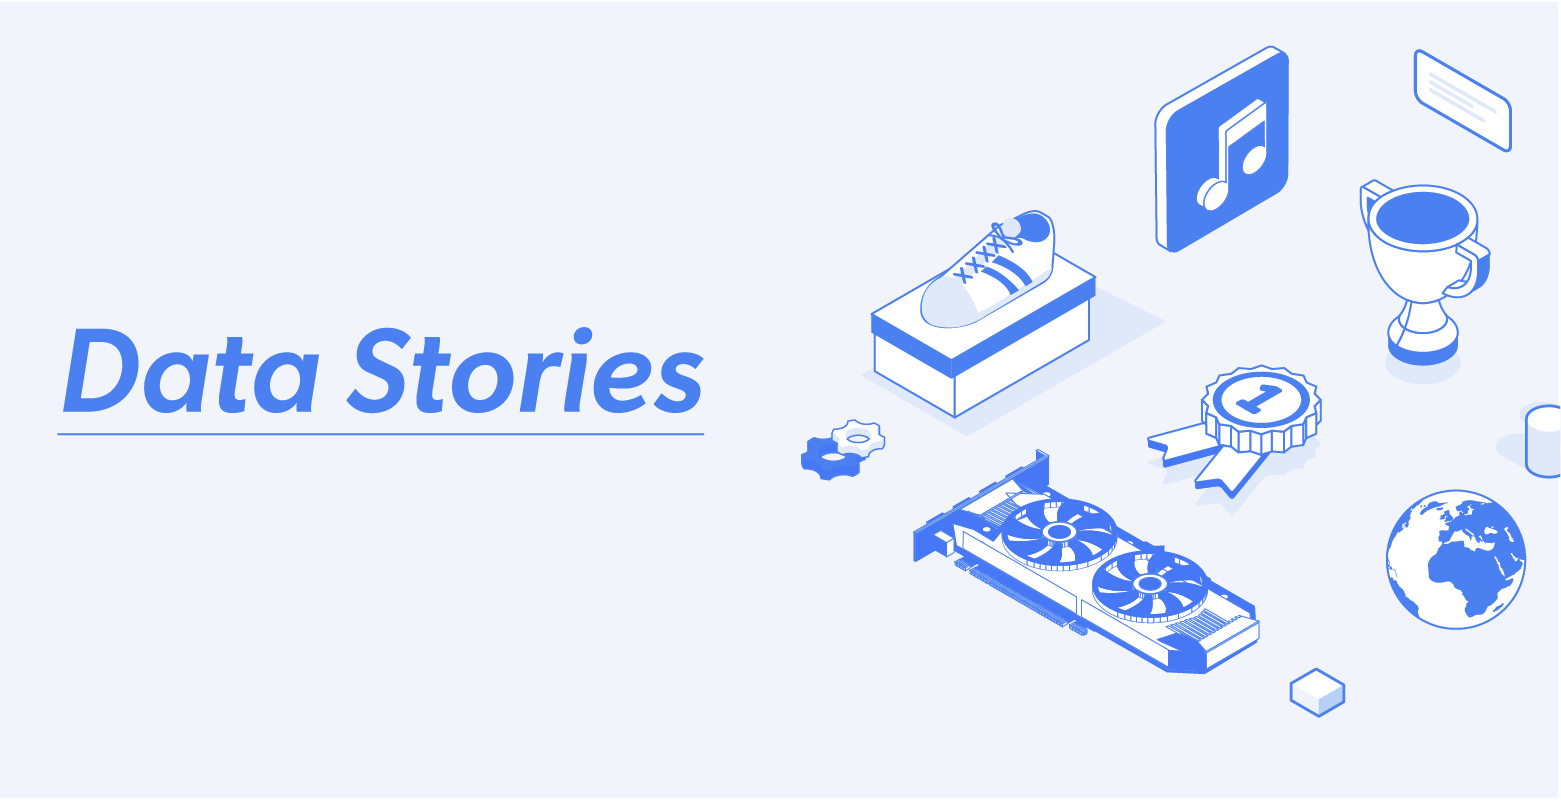 data stories - how proxy networks and data collection impact our world